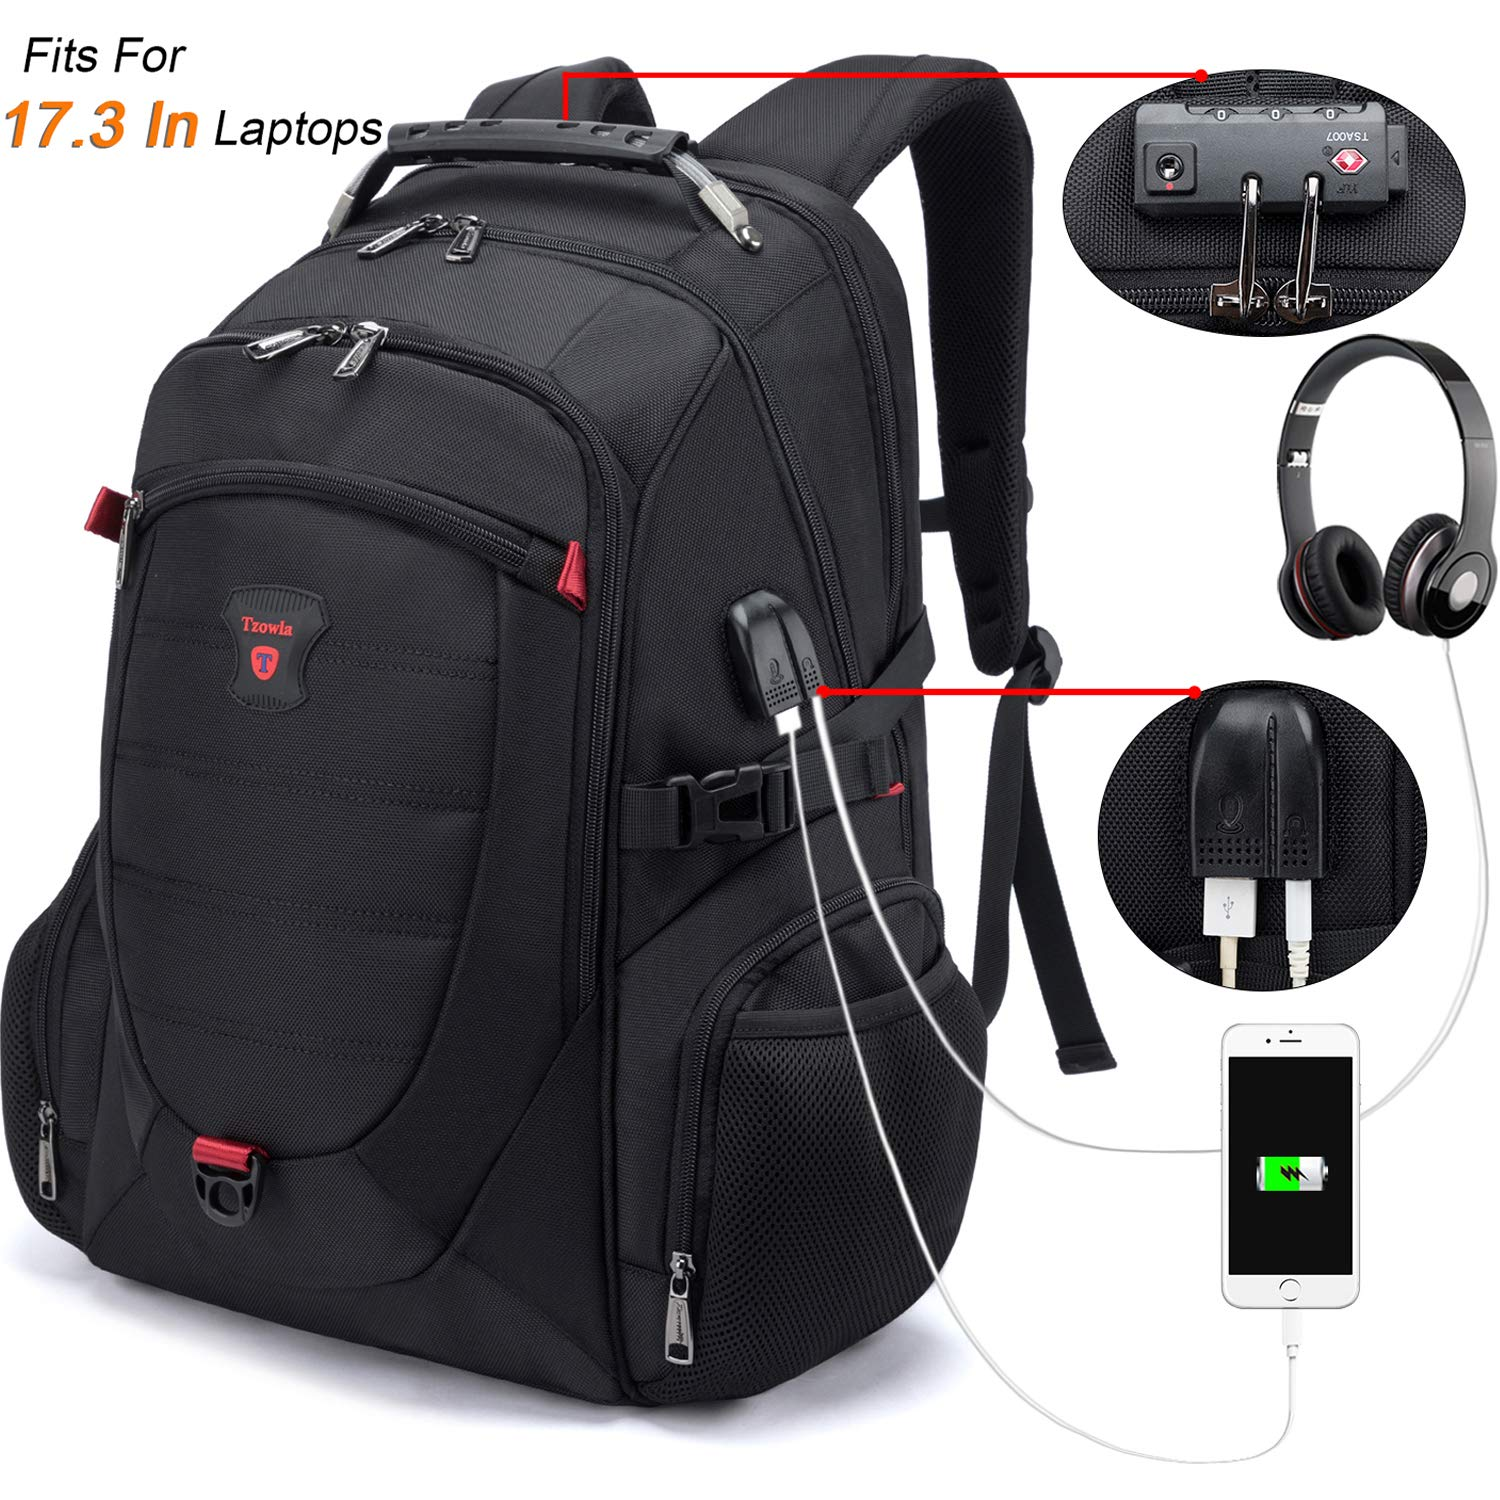 Tzowla Travel Laptop Backpack,Anti-Theft Water Resistant Business Luggage with TSA Lock/&USB Charging Port Durable Computer Cooler Daypack for Men Women College School Bag Fit 17//18 inch Laptops-Black